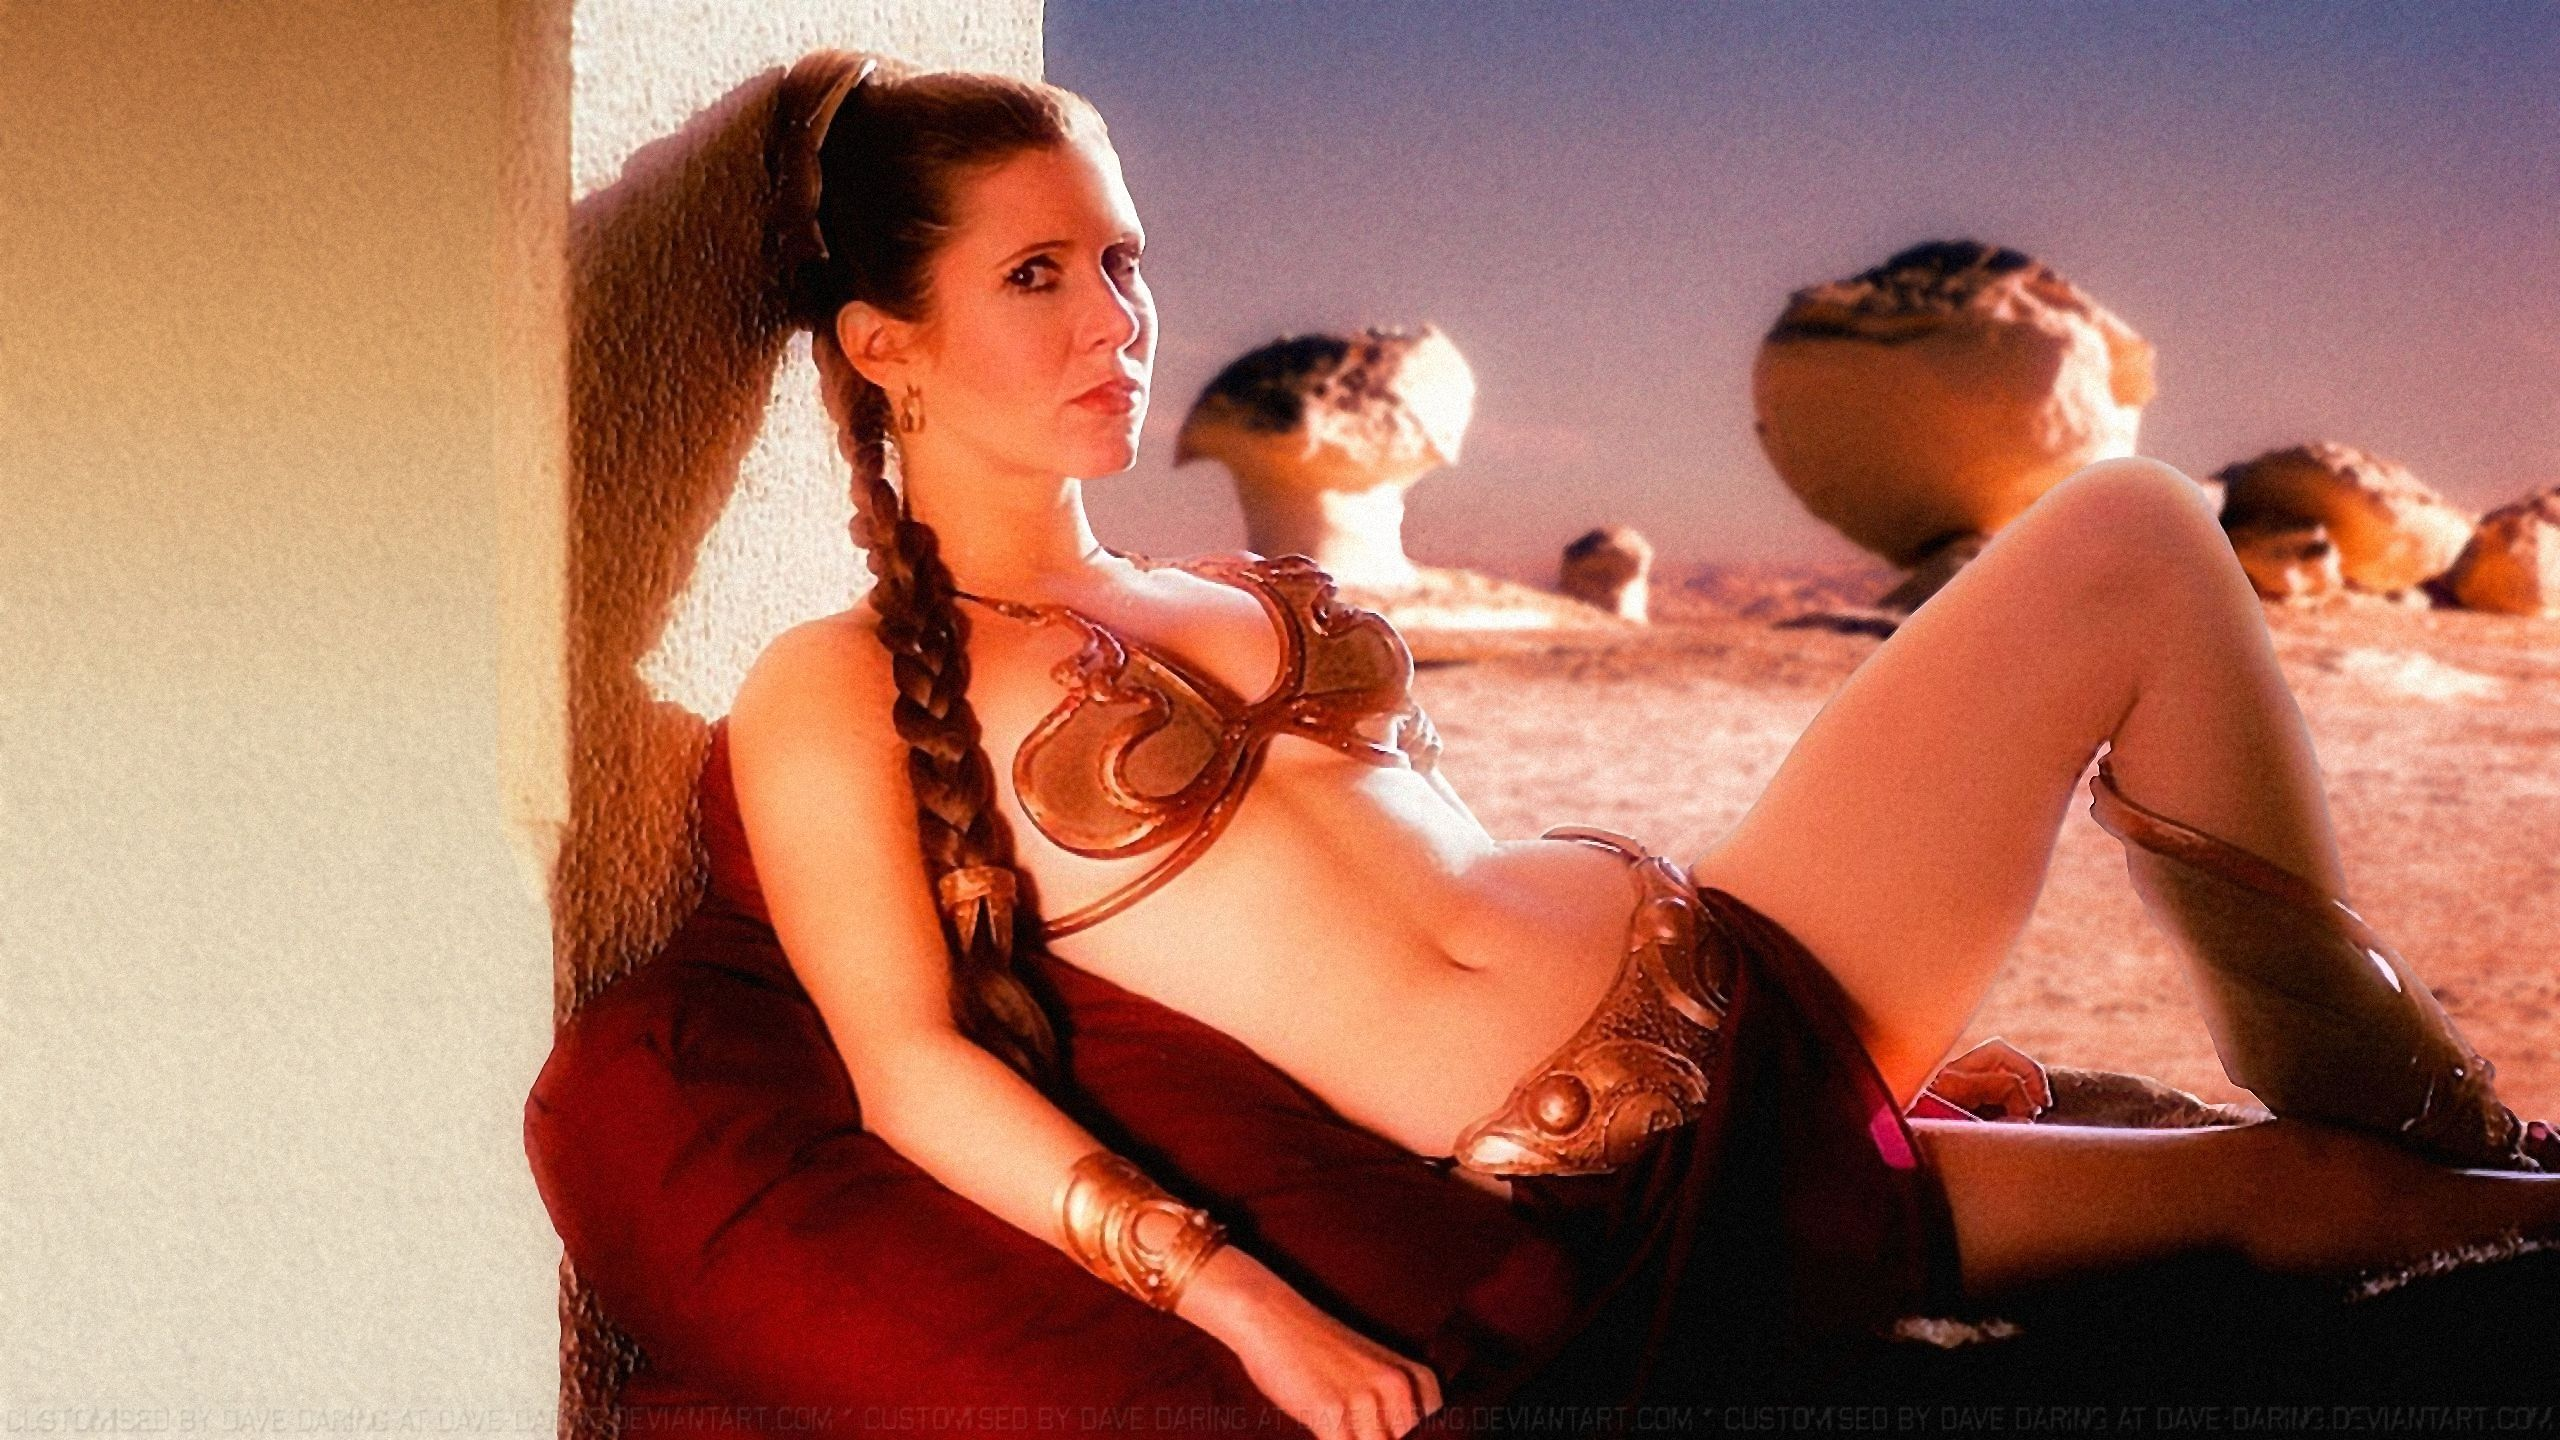 Princess leia sexy wallpapers naked picture